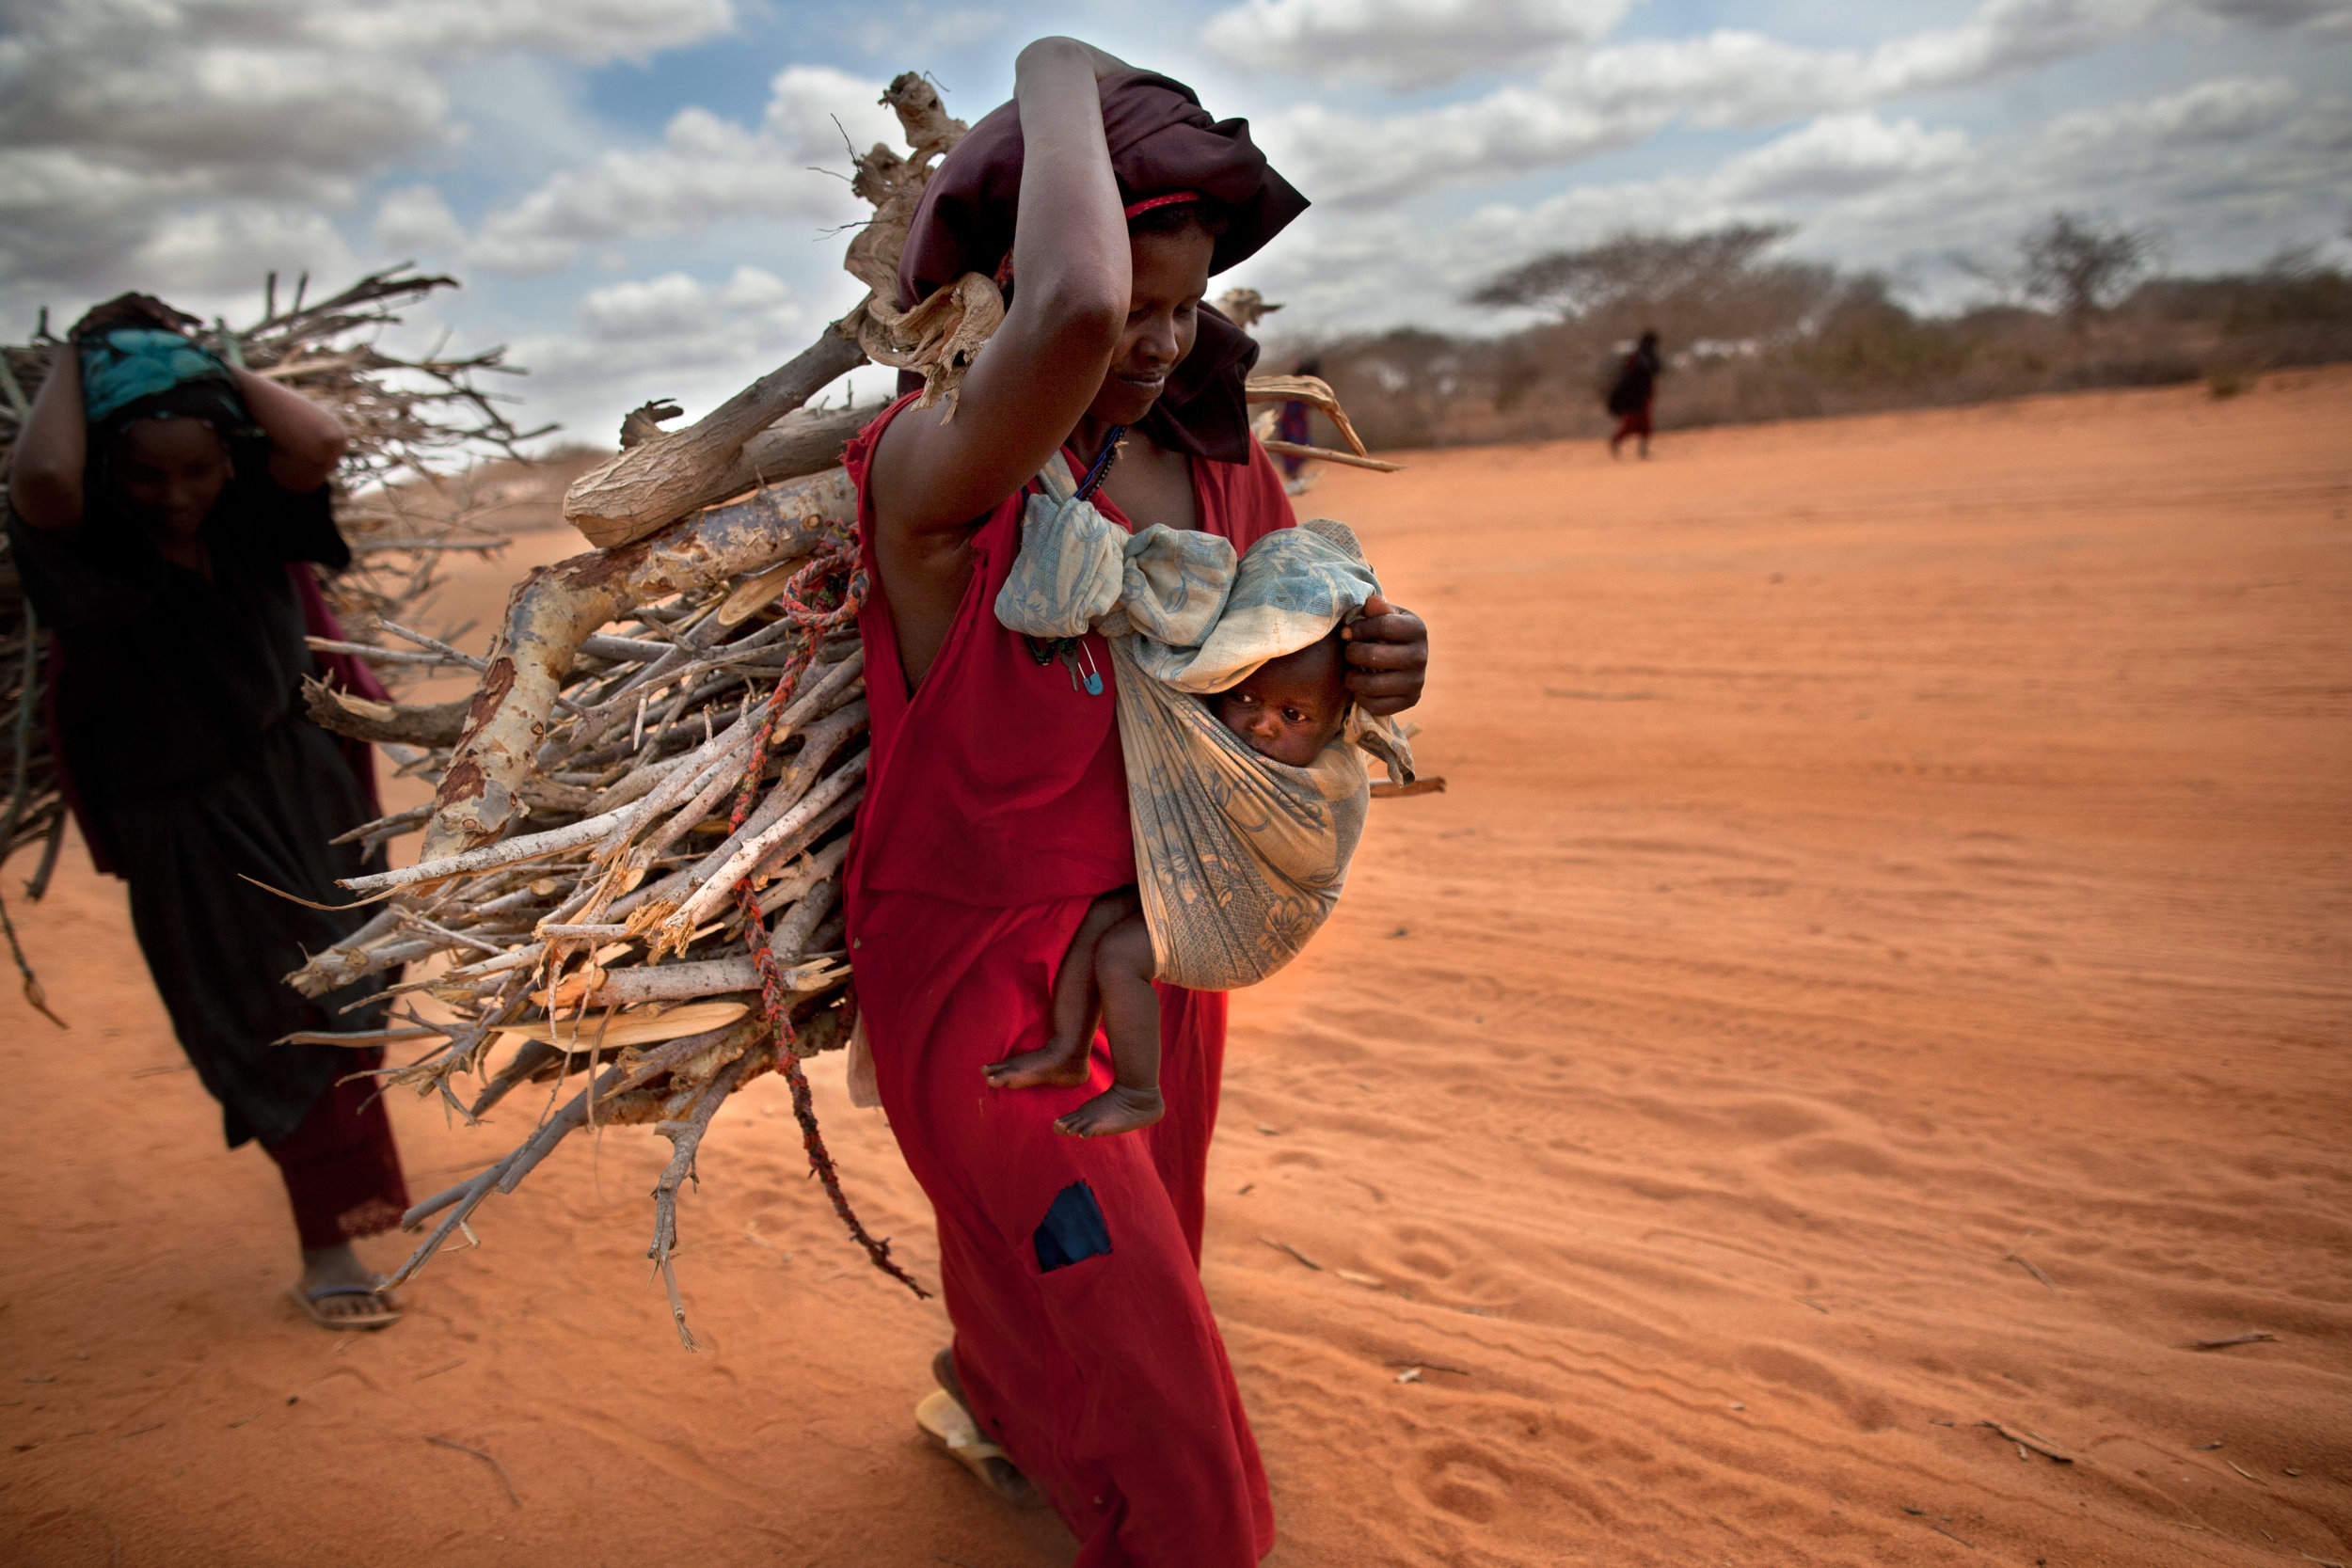 Women carry firewood between Ifo camp and Dadaab town on a dusty stretch of road. Dadaab is the largest refugee camp in the world, set up in 1991 to house Somalis fleeing the civil war.